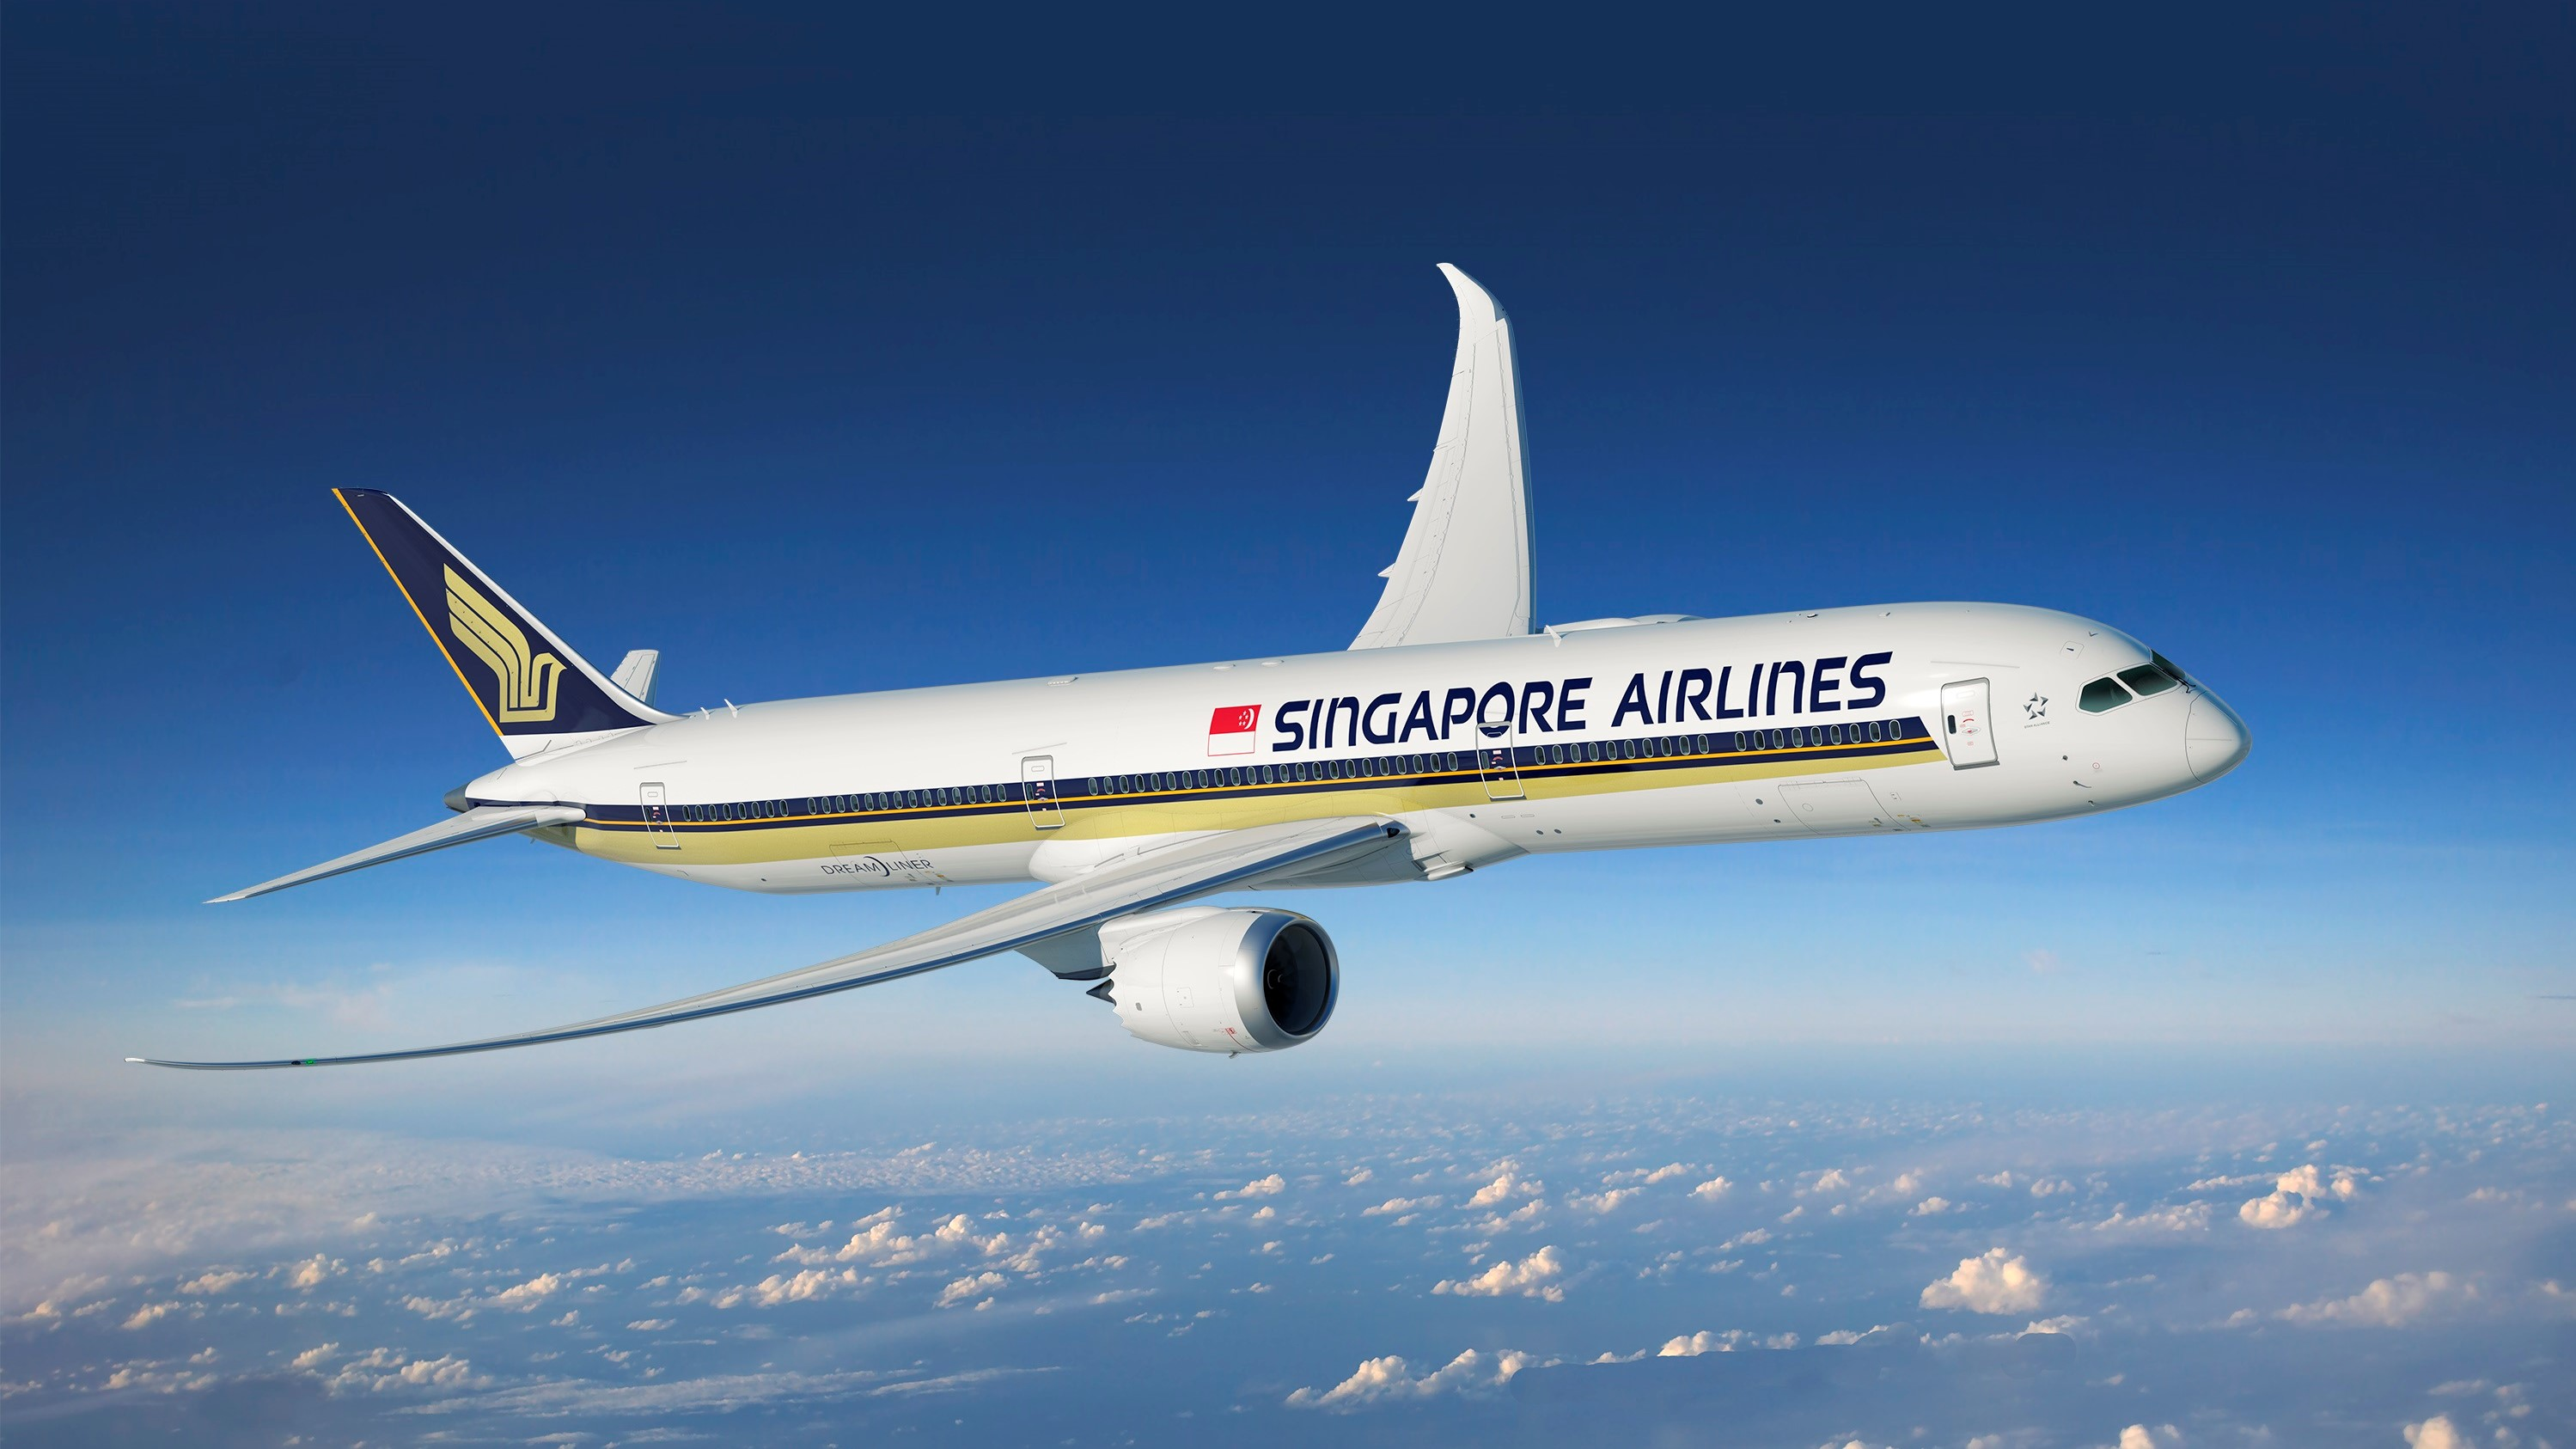 Singapore Airlines reports 10.9 % increase for Q3 2019 1